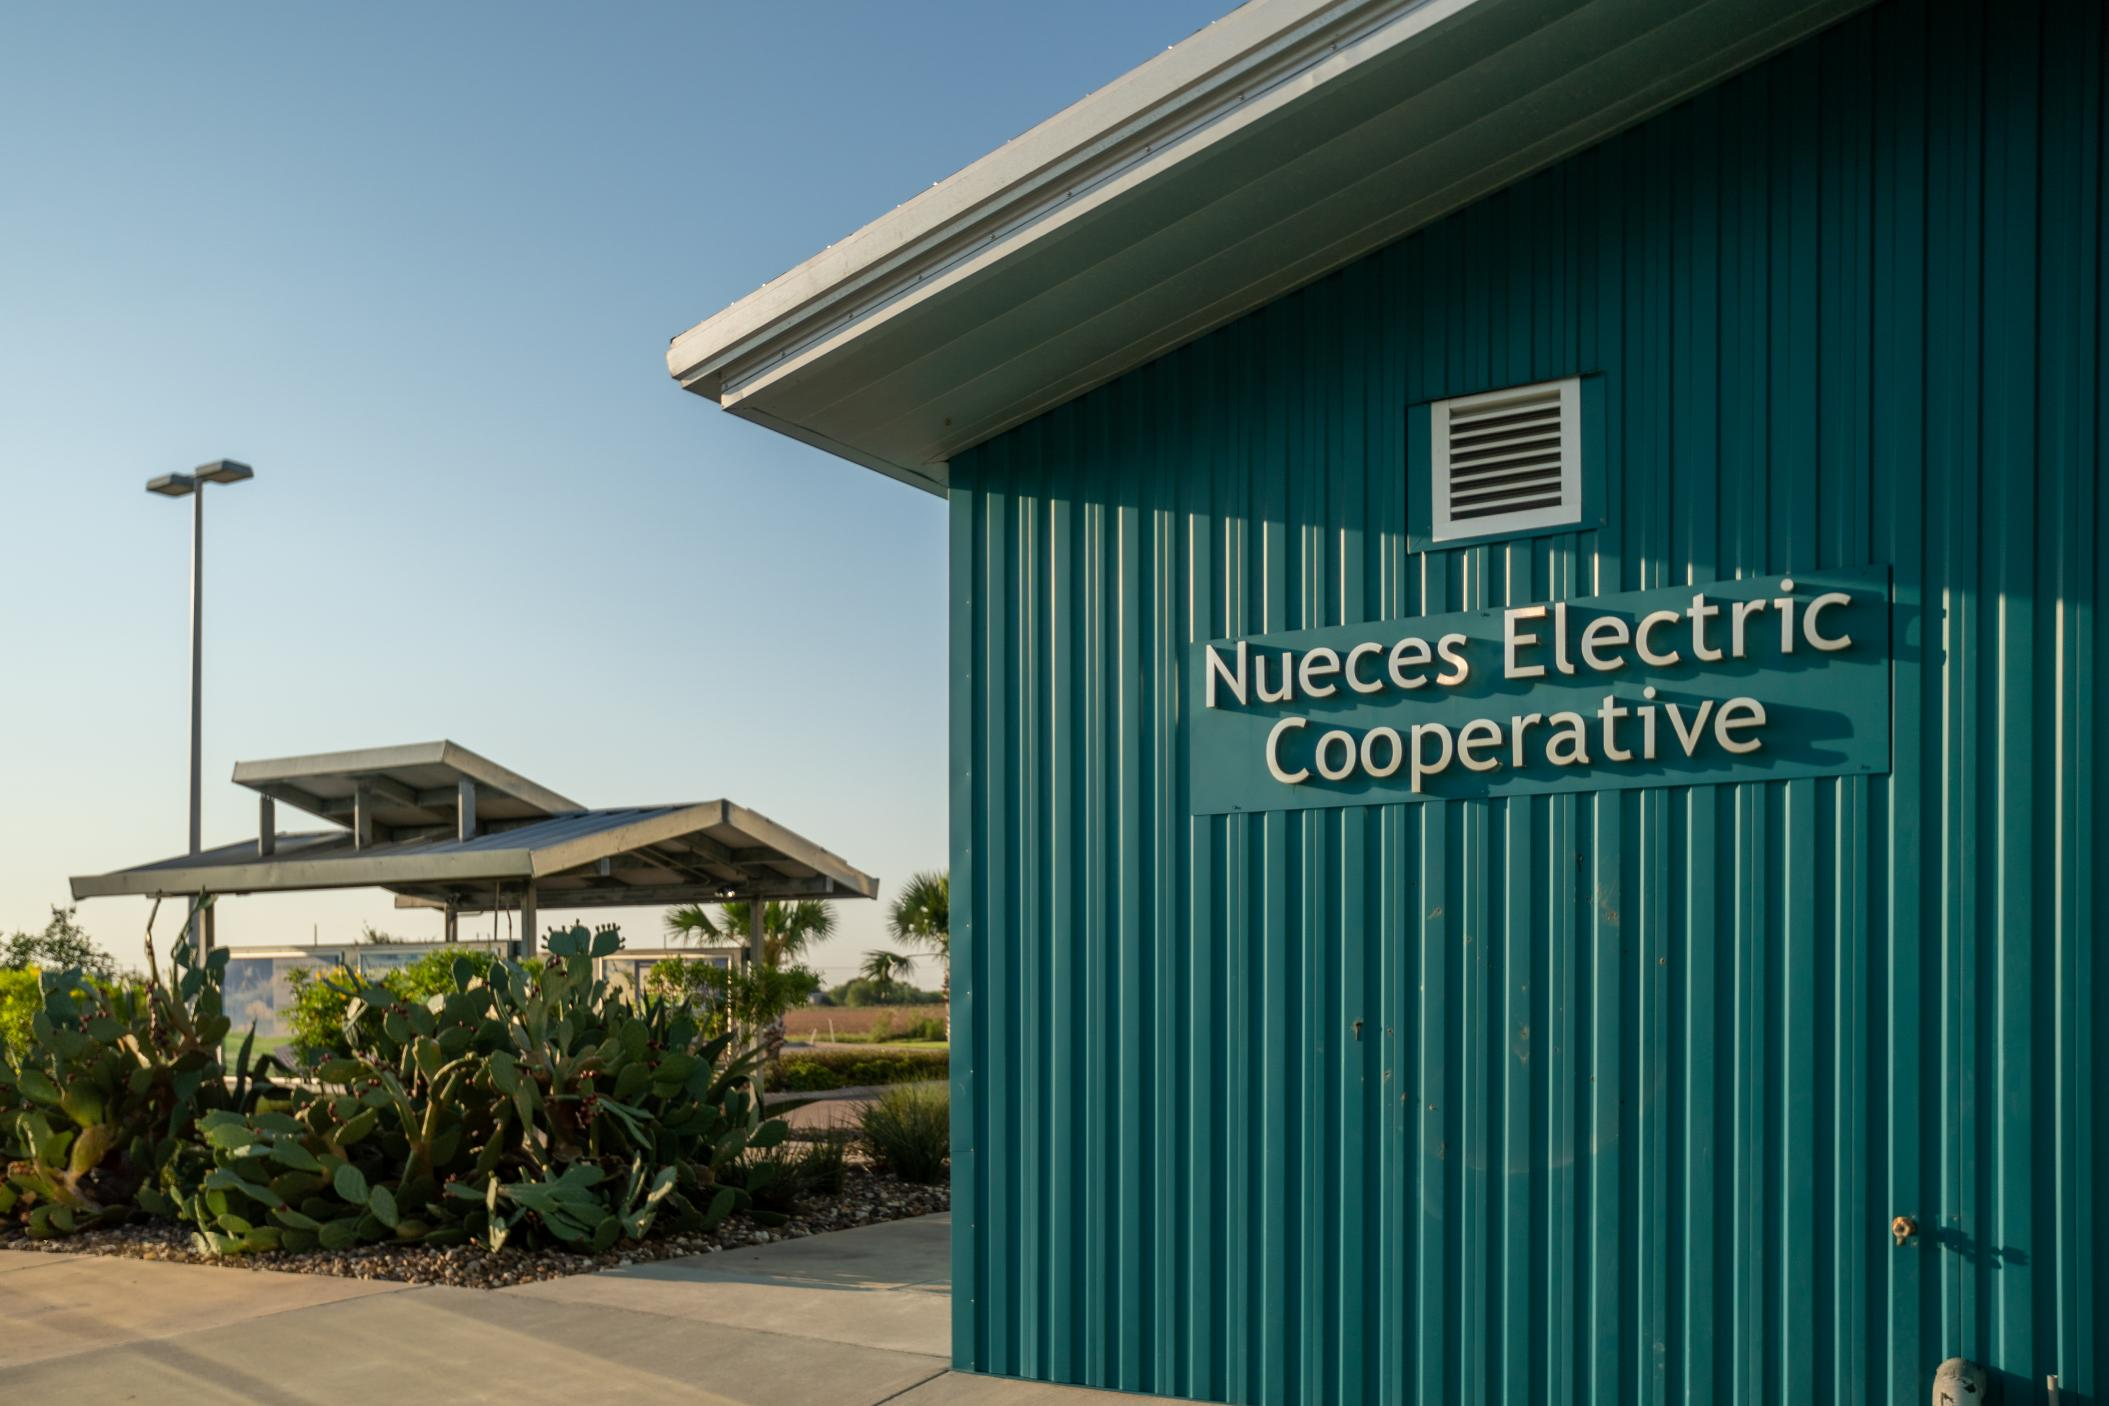 https://www.nueceselectric.org/sites/default/files/hero_images/20200820_nueces_electric_dp_015_50249755191_o.jpg